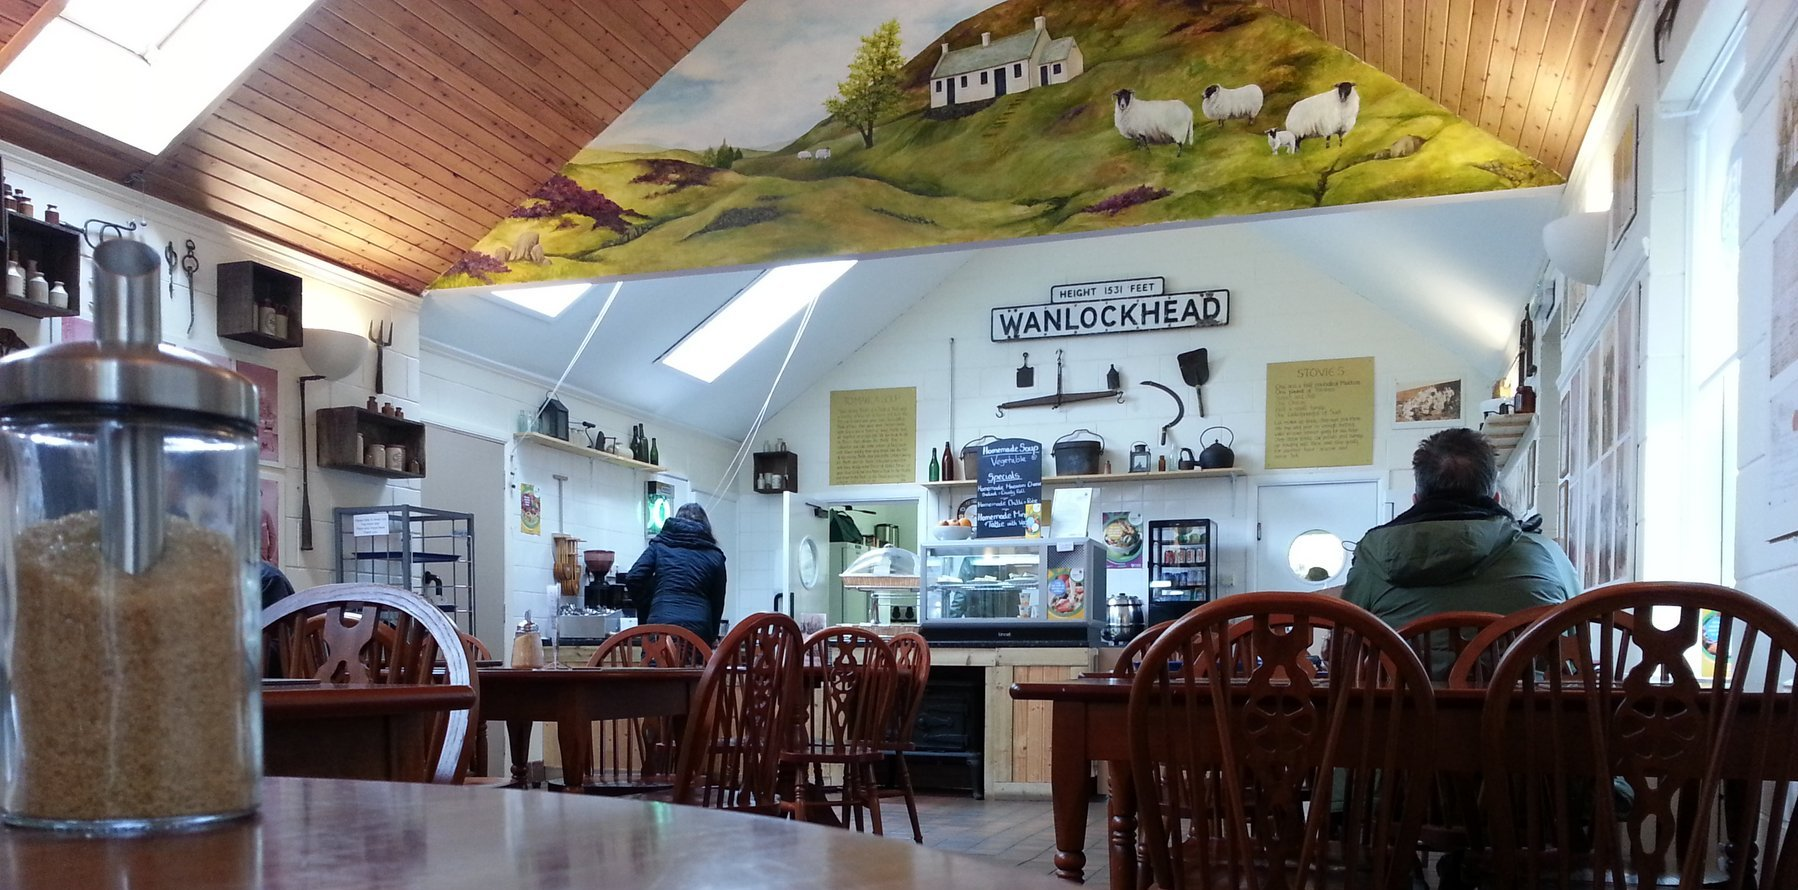 Wanlockhead Visitor Centre is an oasis of calm and lots to look at on the walls